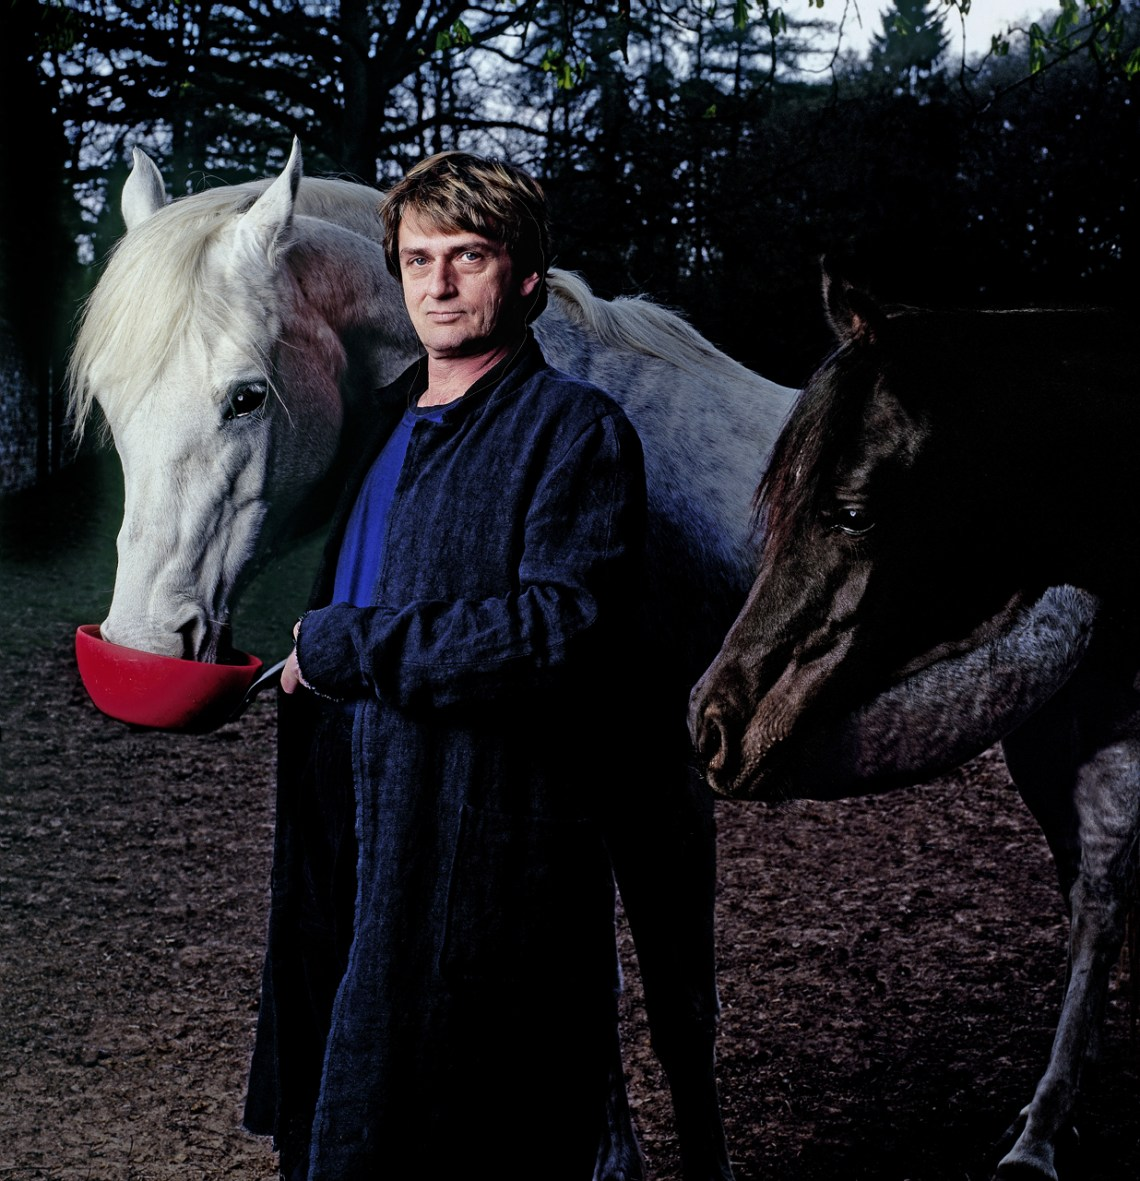 Mike-Oldfield-horse-1